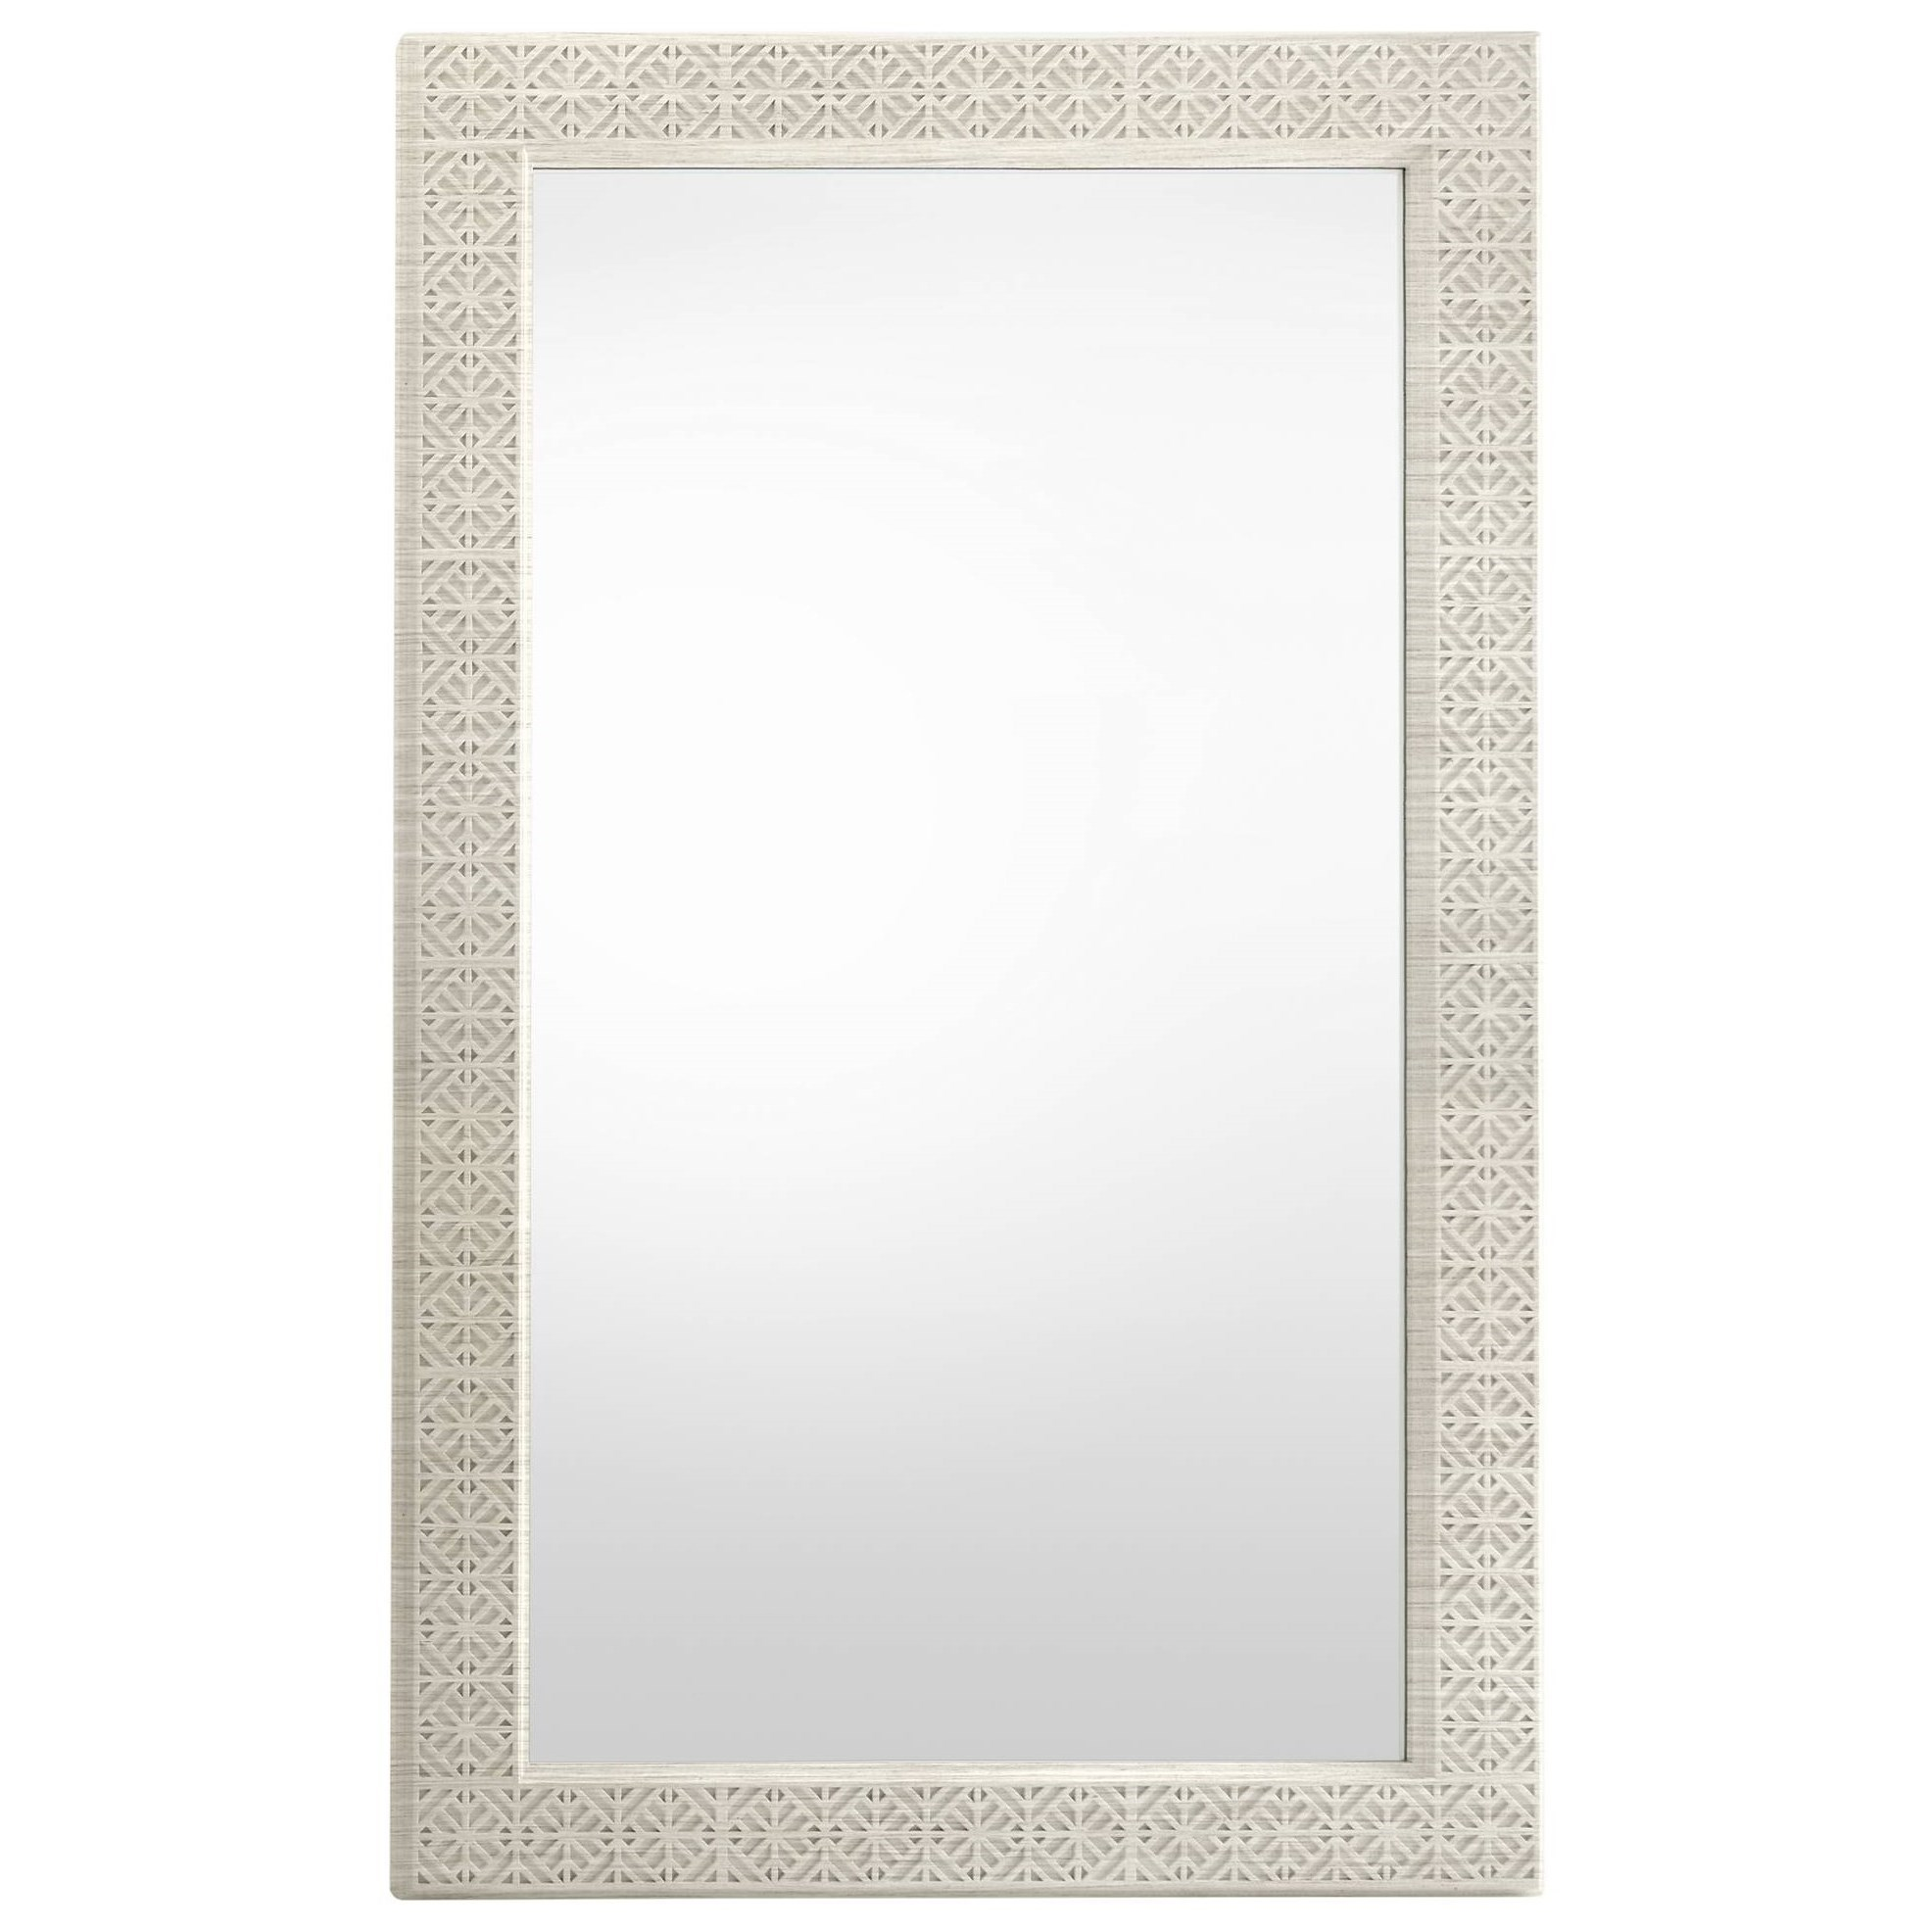 Stanley Furniture Coastal Living Oasis Catalina Floor Mirror - Item Number: 527-53-34